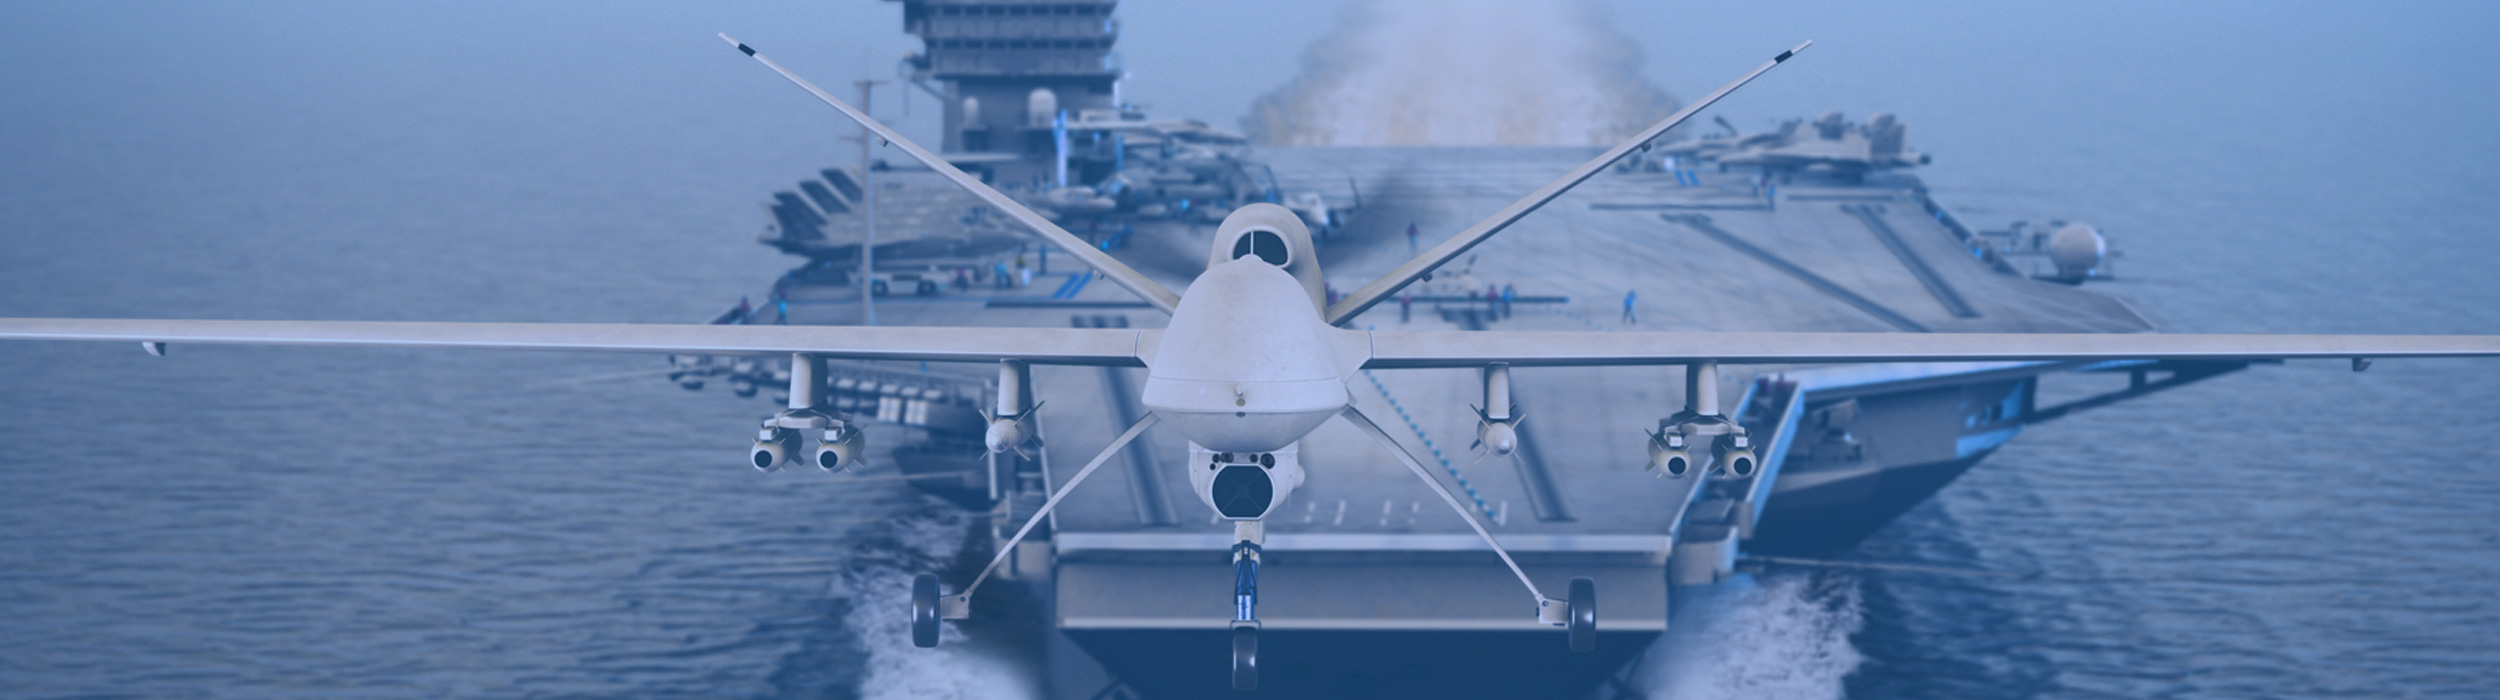 Aerospace Image - Drone and aircraft carrier